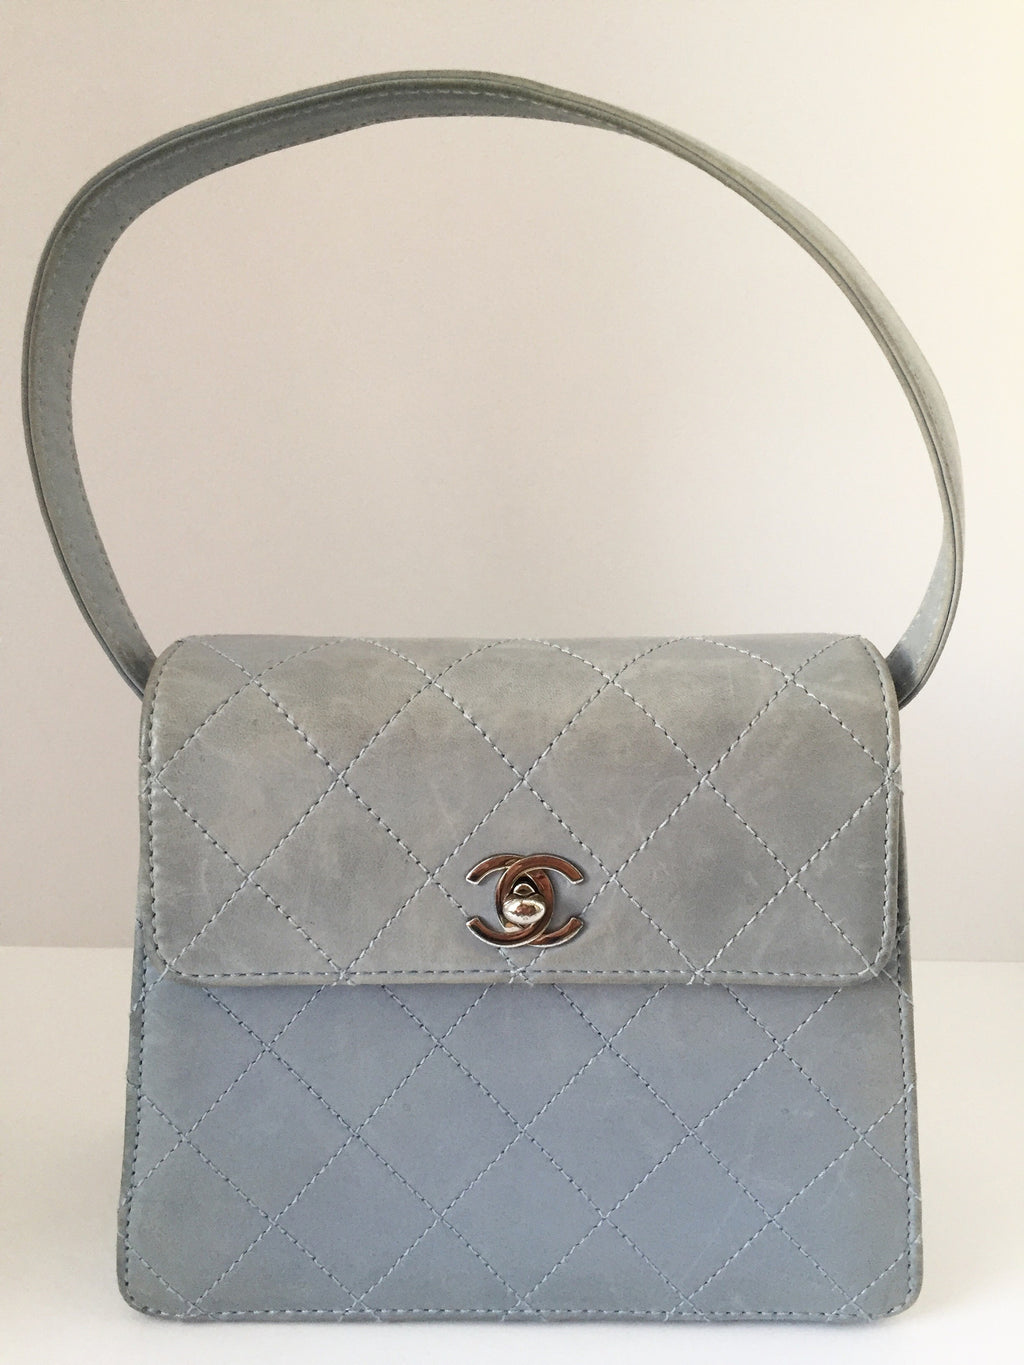 Chanel Lambskin Kelly Light Blue Small Structured Single Flap Handbag